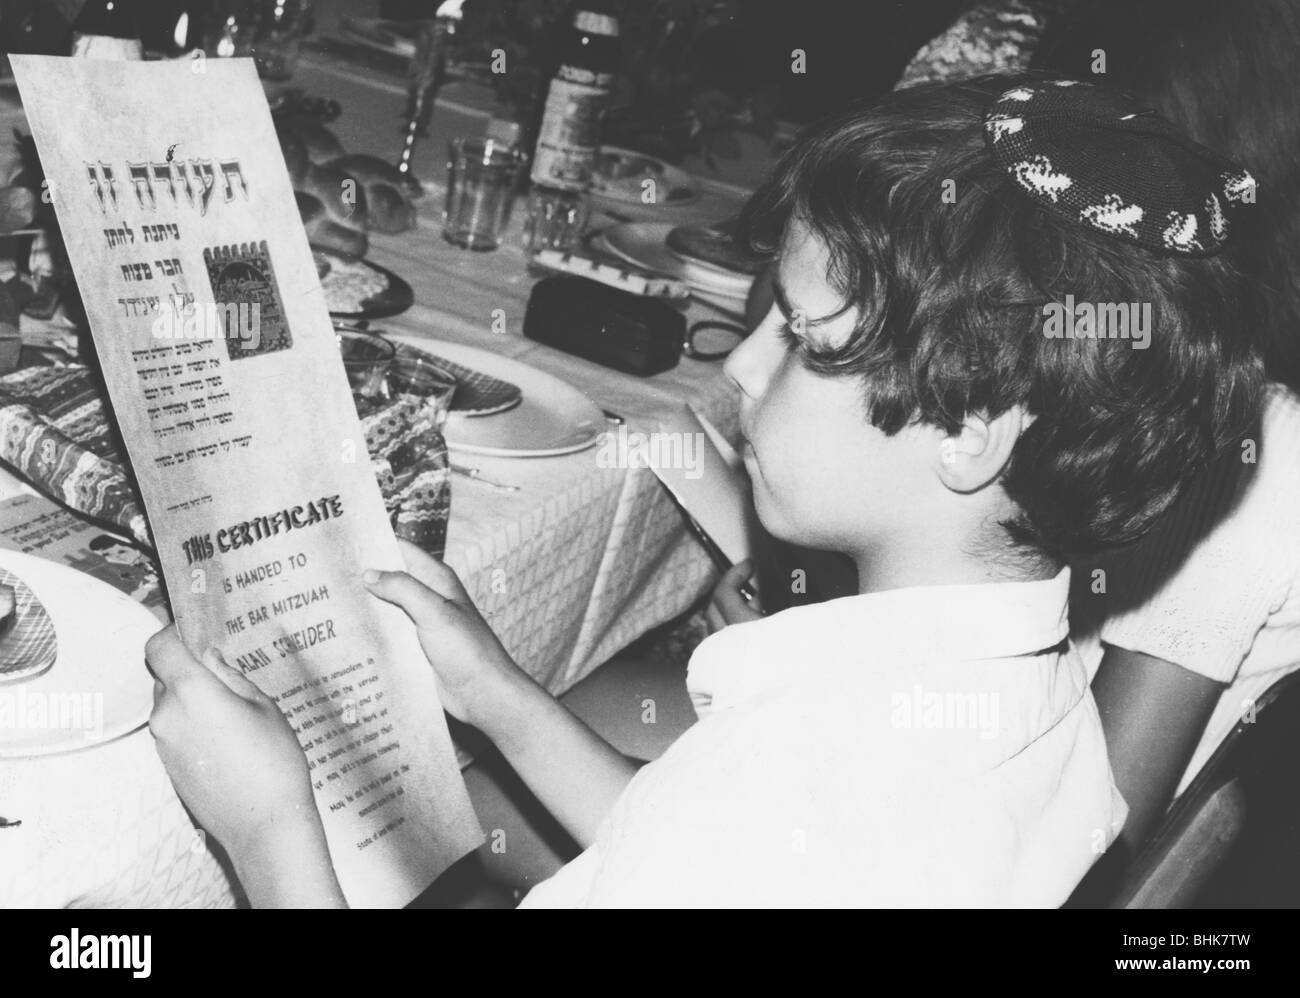 An American boy reading his Bar Mitzvah certificate, Israel, 1971. - Stock Image